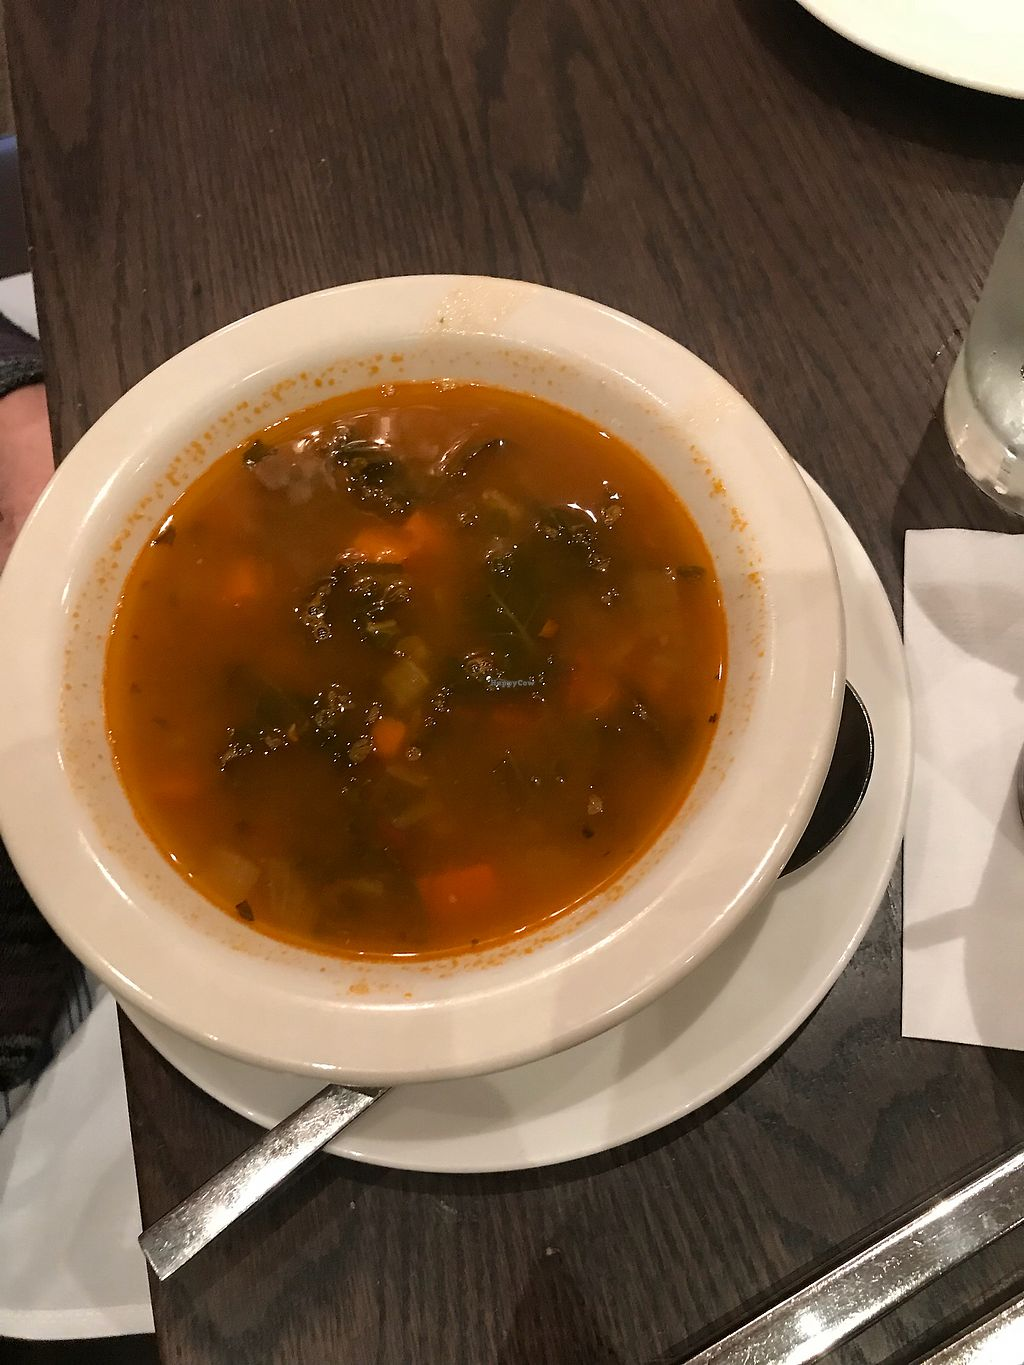 """Photo of Farmer's Table  by <a href=""""/members/profile/bi1405"""">bi1405</a> <br/>Kale and lentil soup <br/> January 12, 2018  - <a href='/contact/abuse/image/46952/345811'>Report</a>"""